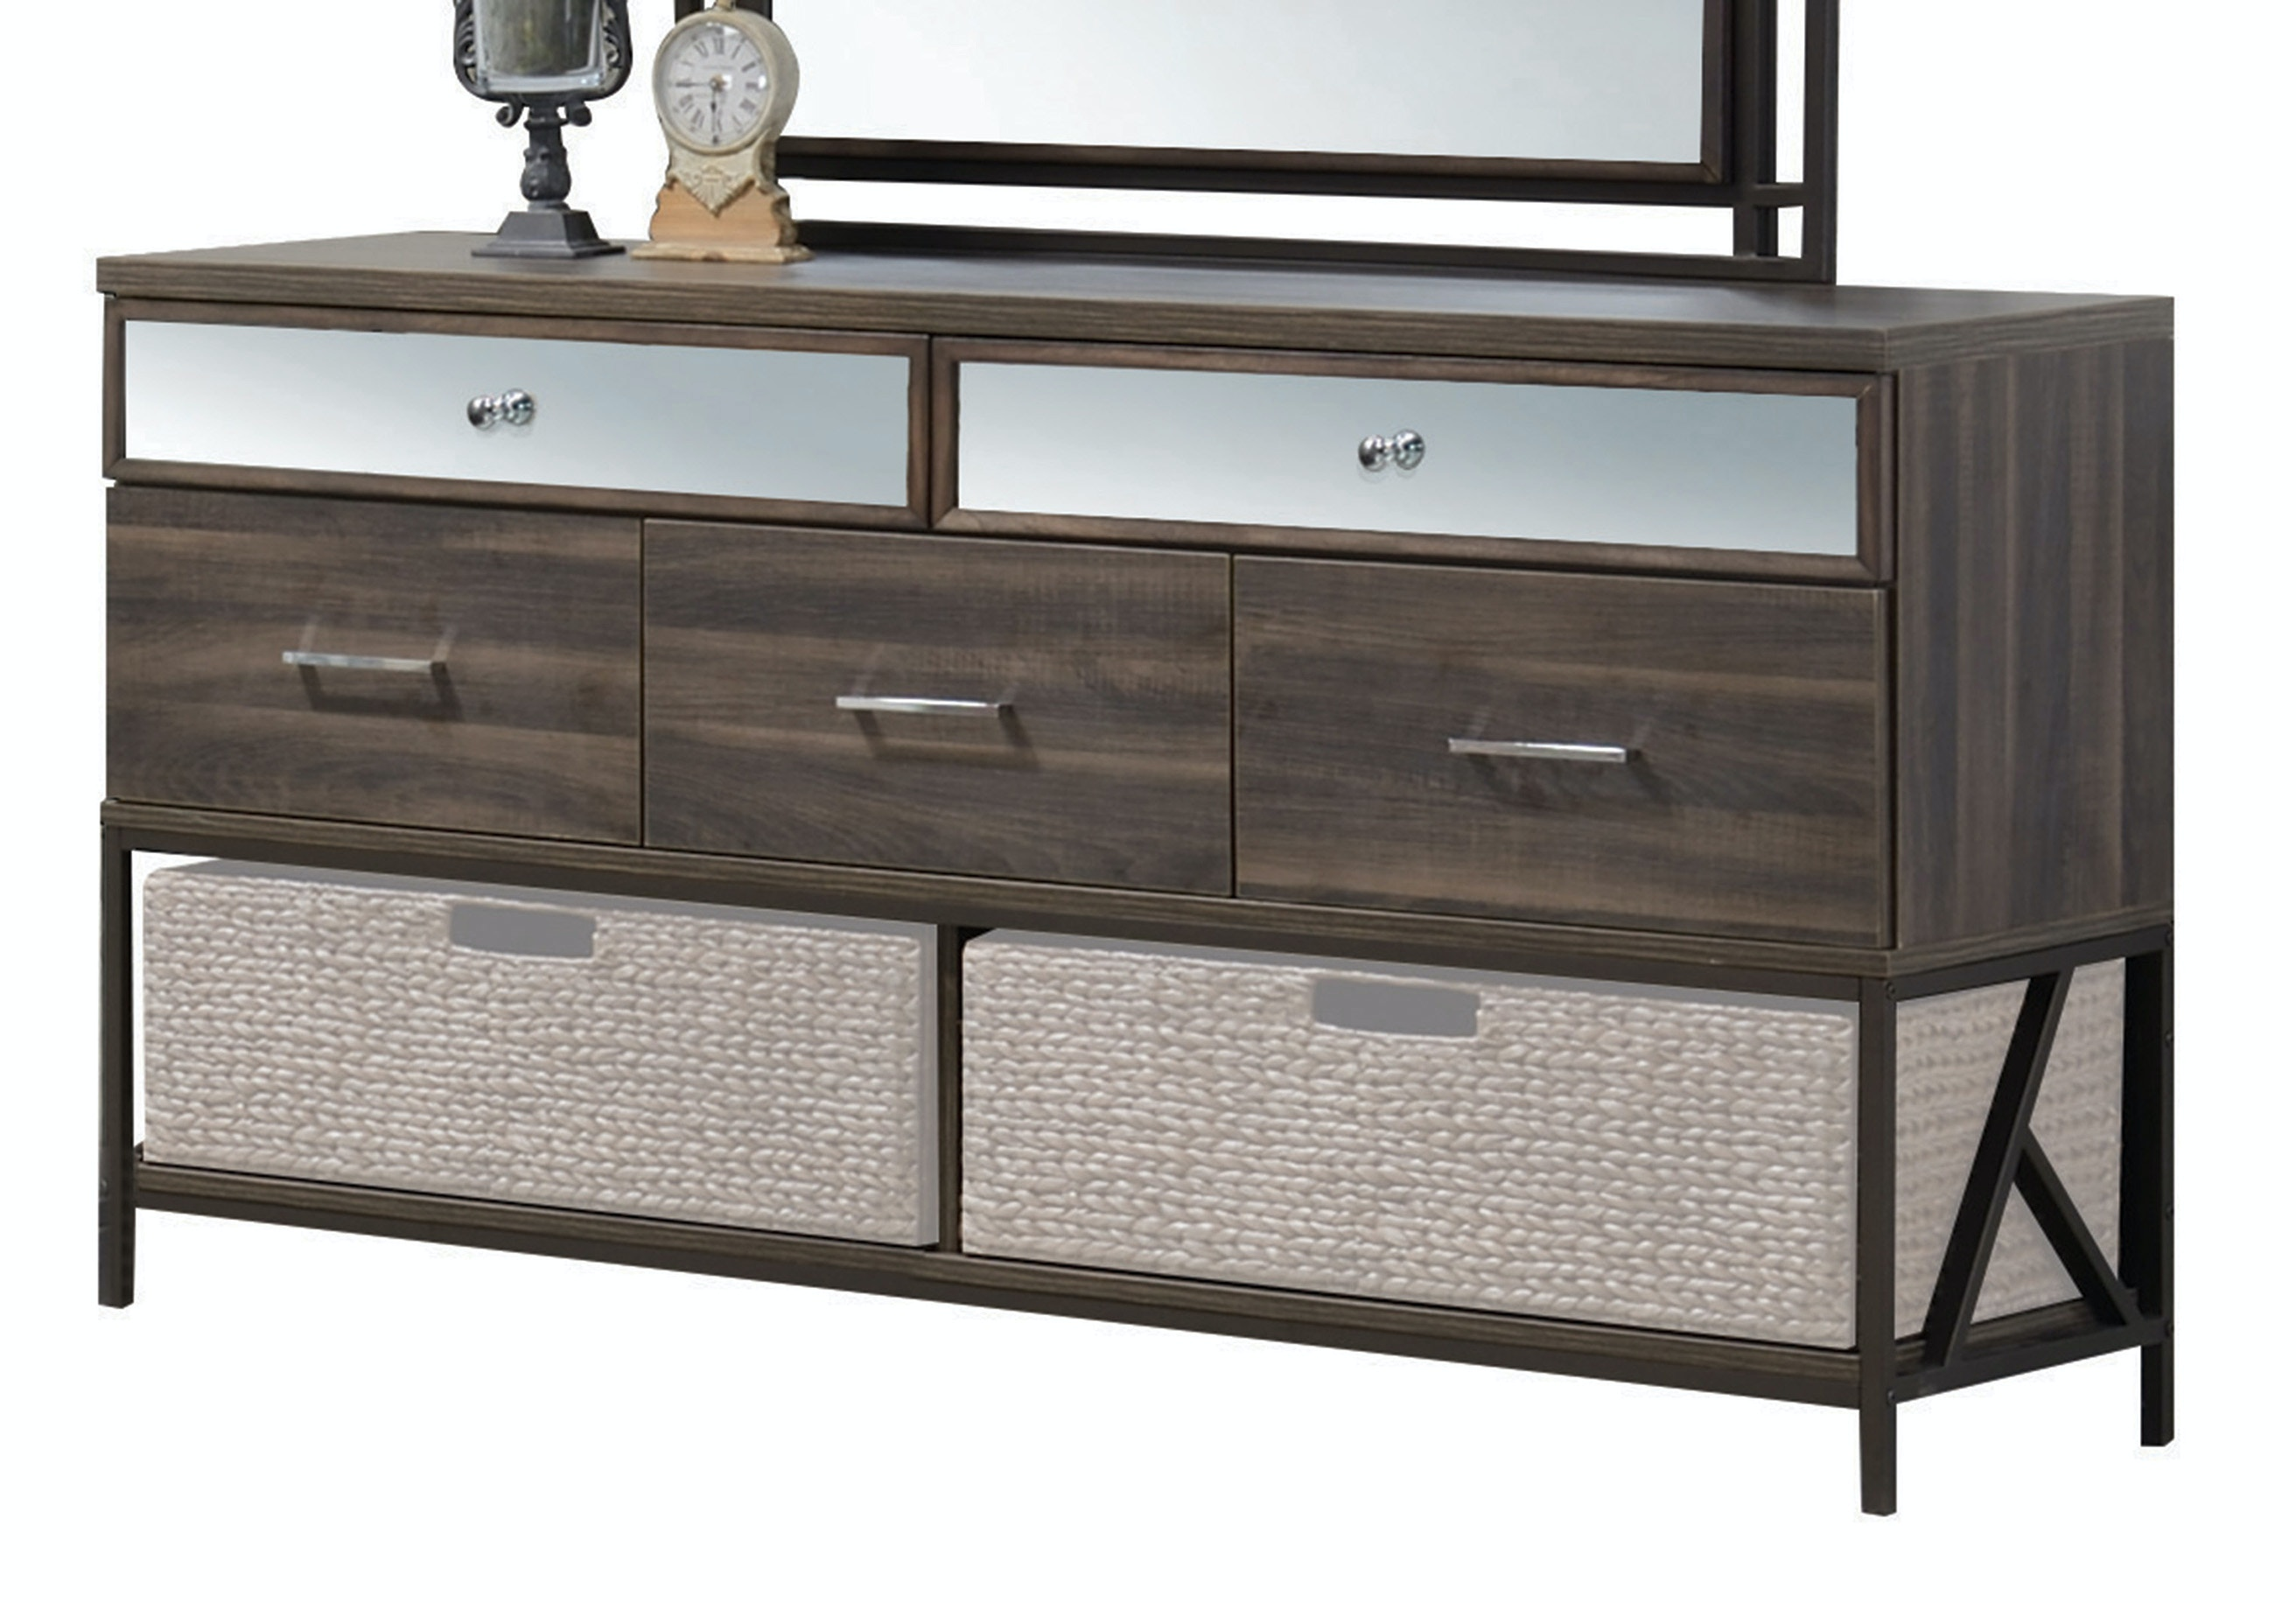 Acme Furniture Bedroom Adrianna Dresser 20955   Furniture Marketplace    Greenville, SC